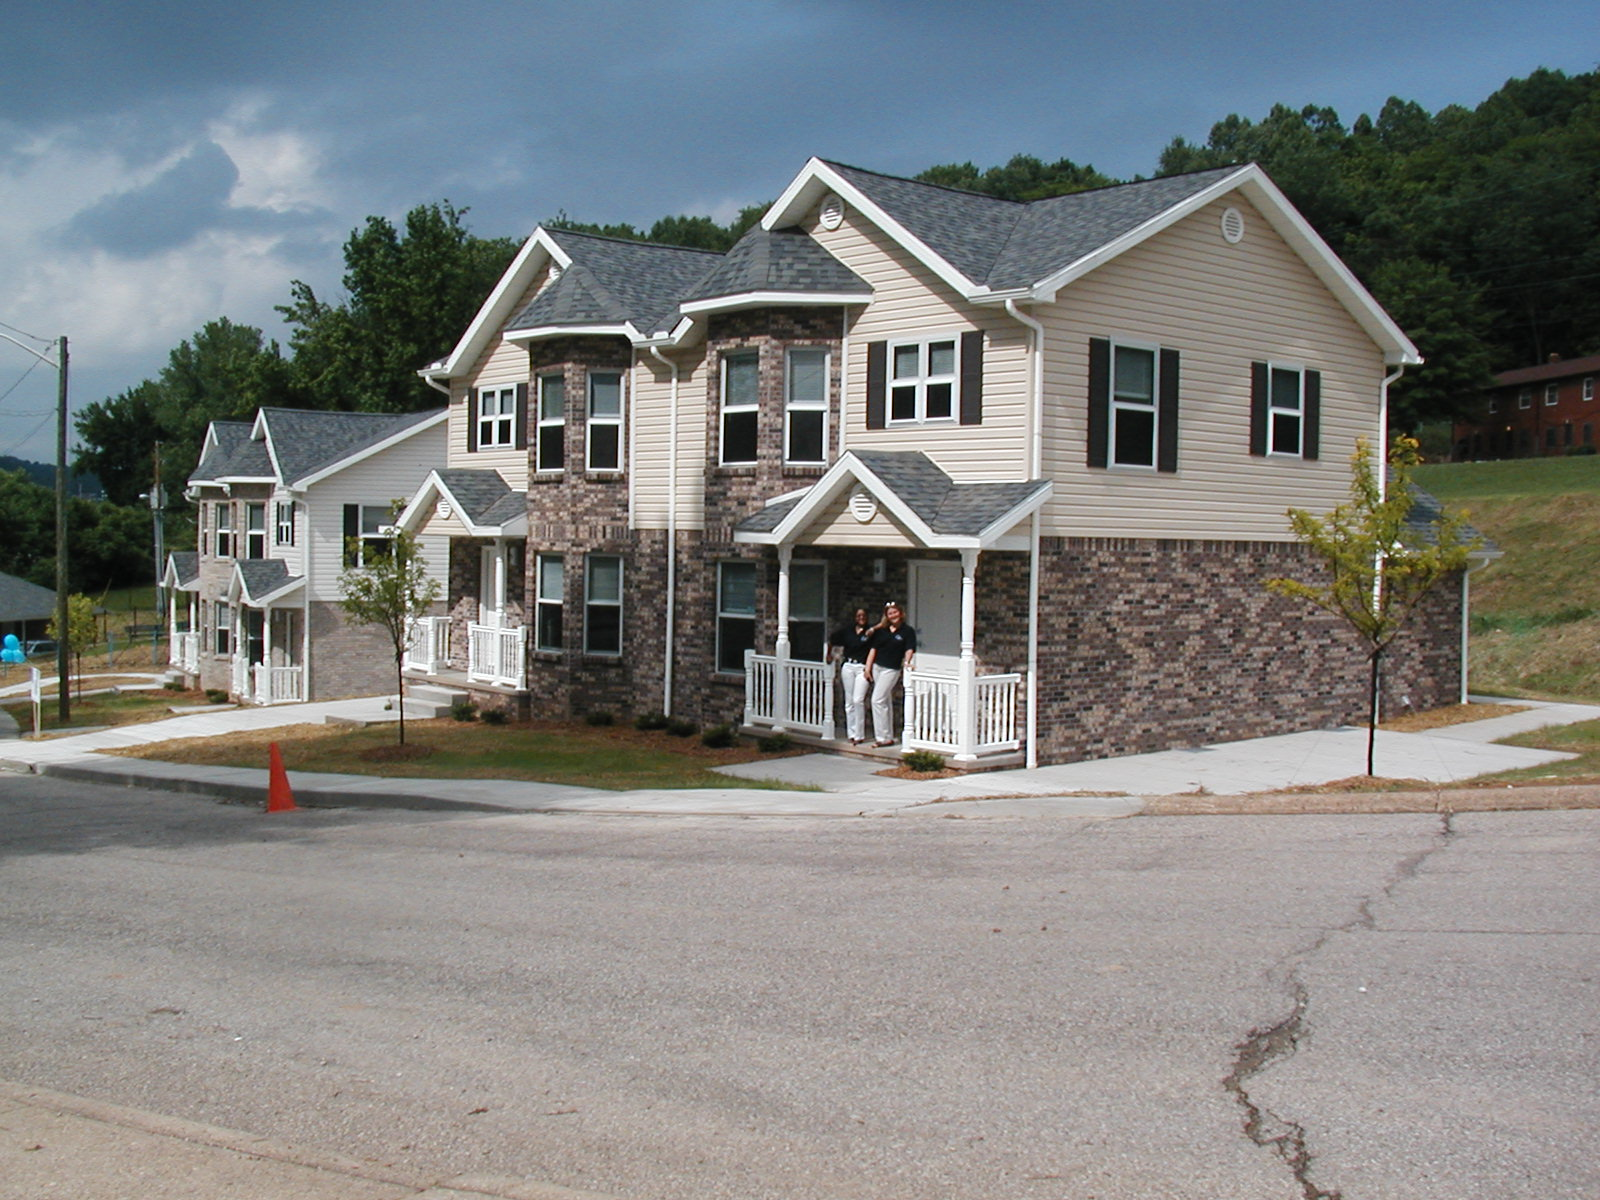 Image of Orchard Manor in Charleston, West Virginia